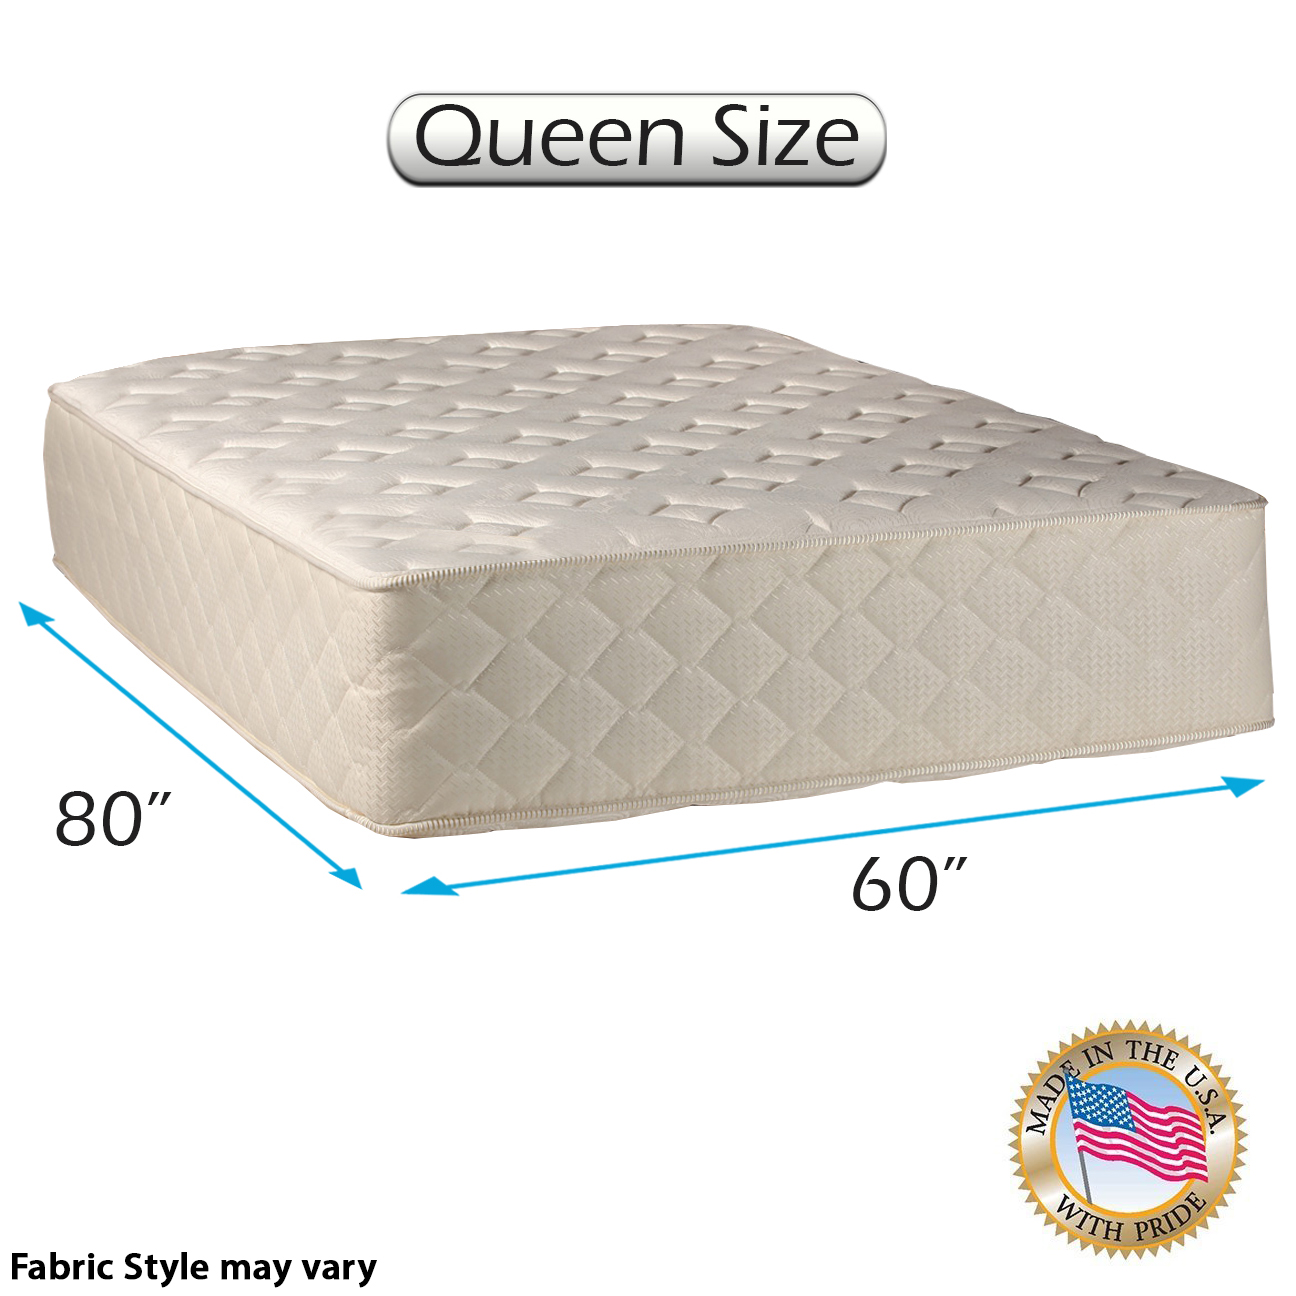 "Highlight Luxury Firm Queen Size (60""x80""x14"") Mattress Only - Fully Assembled - Spinal Back Support, Innerspring Coils, Premium edge guards, Longlasting Comfort - By Dream Solutions USA"